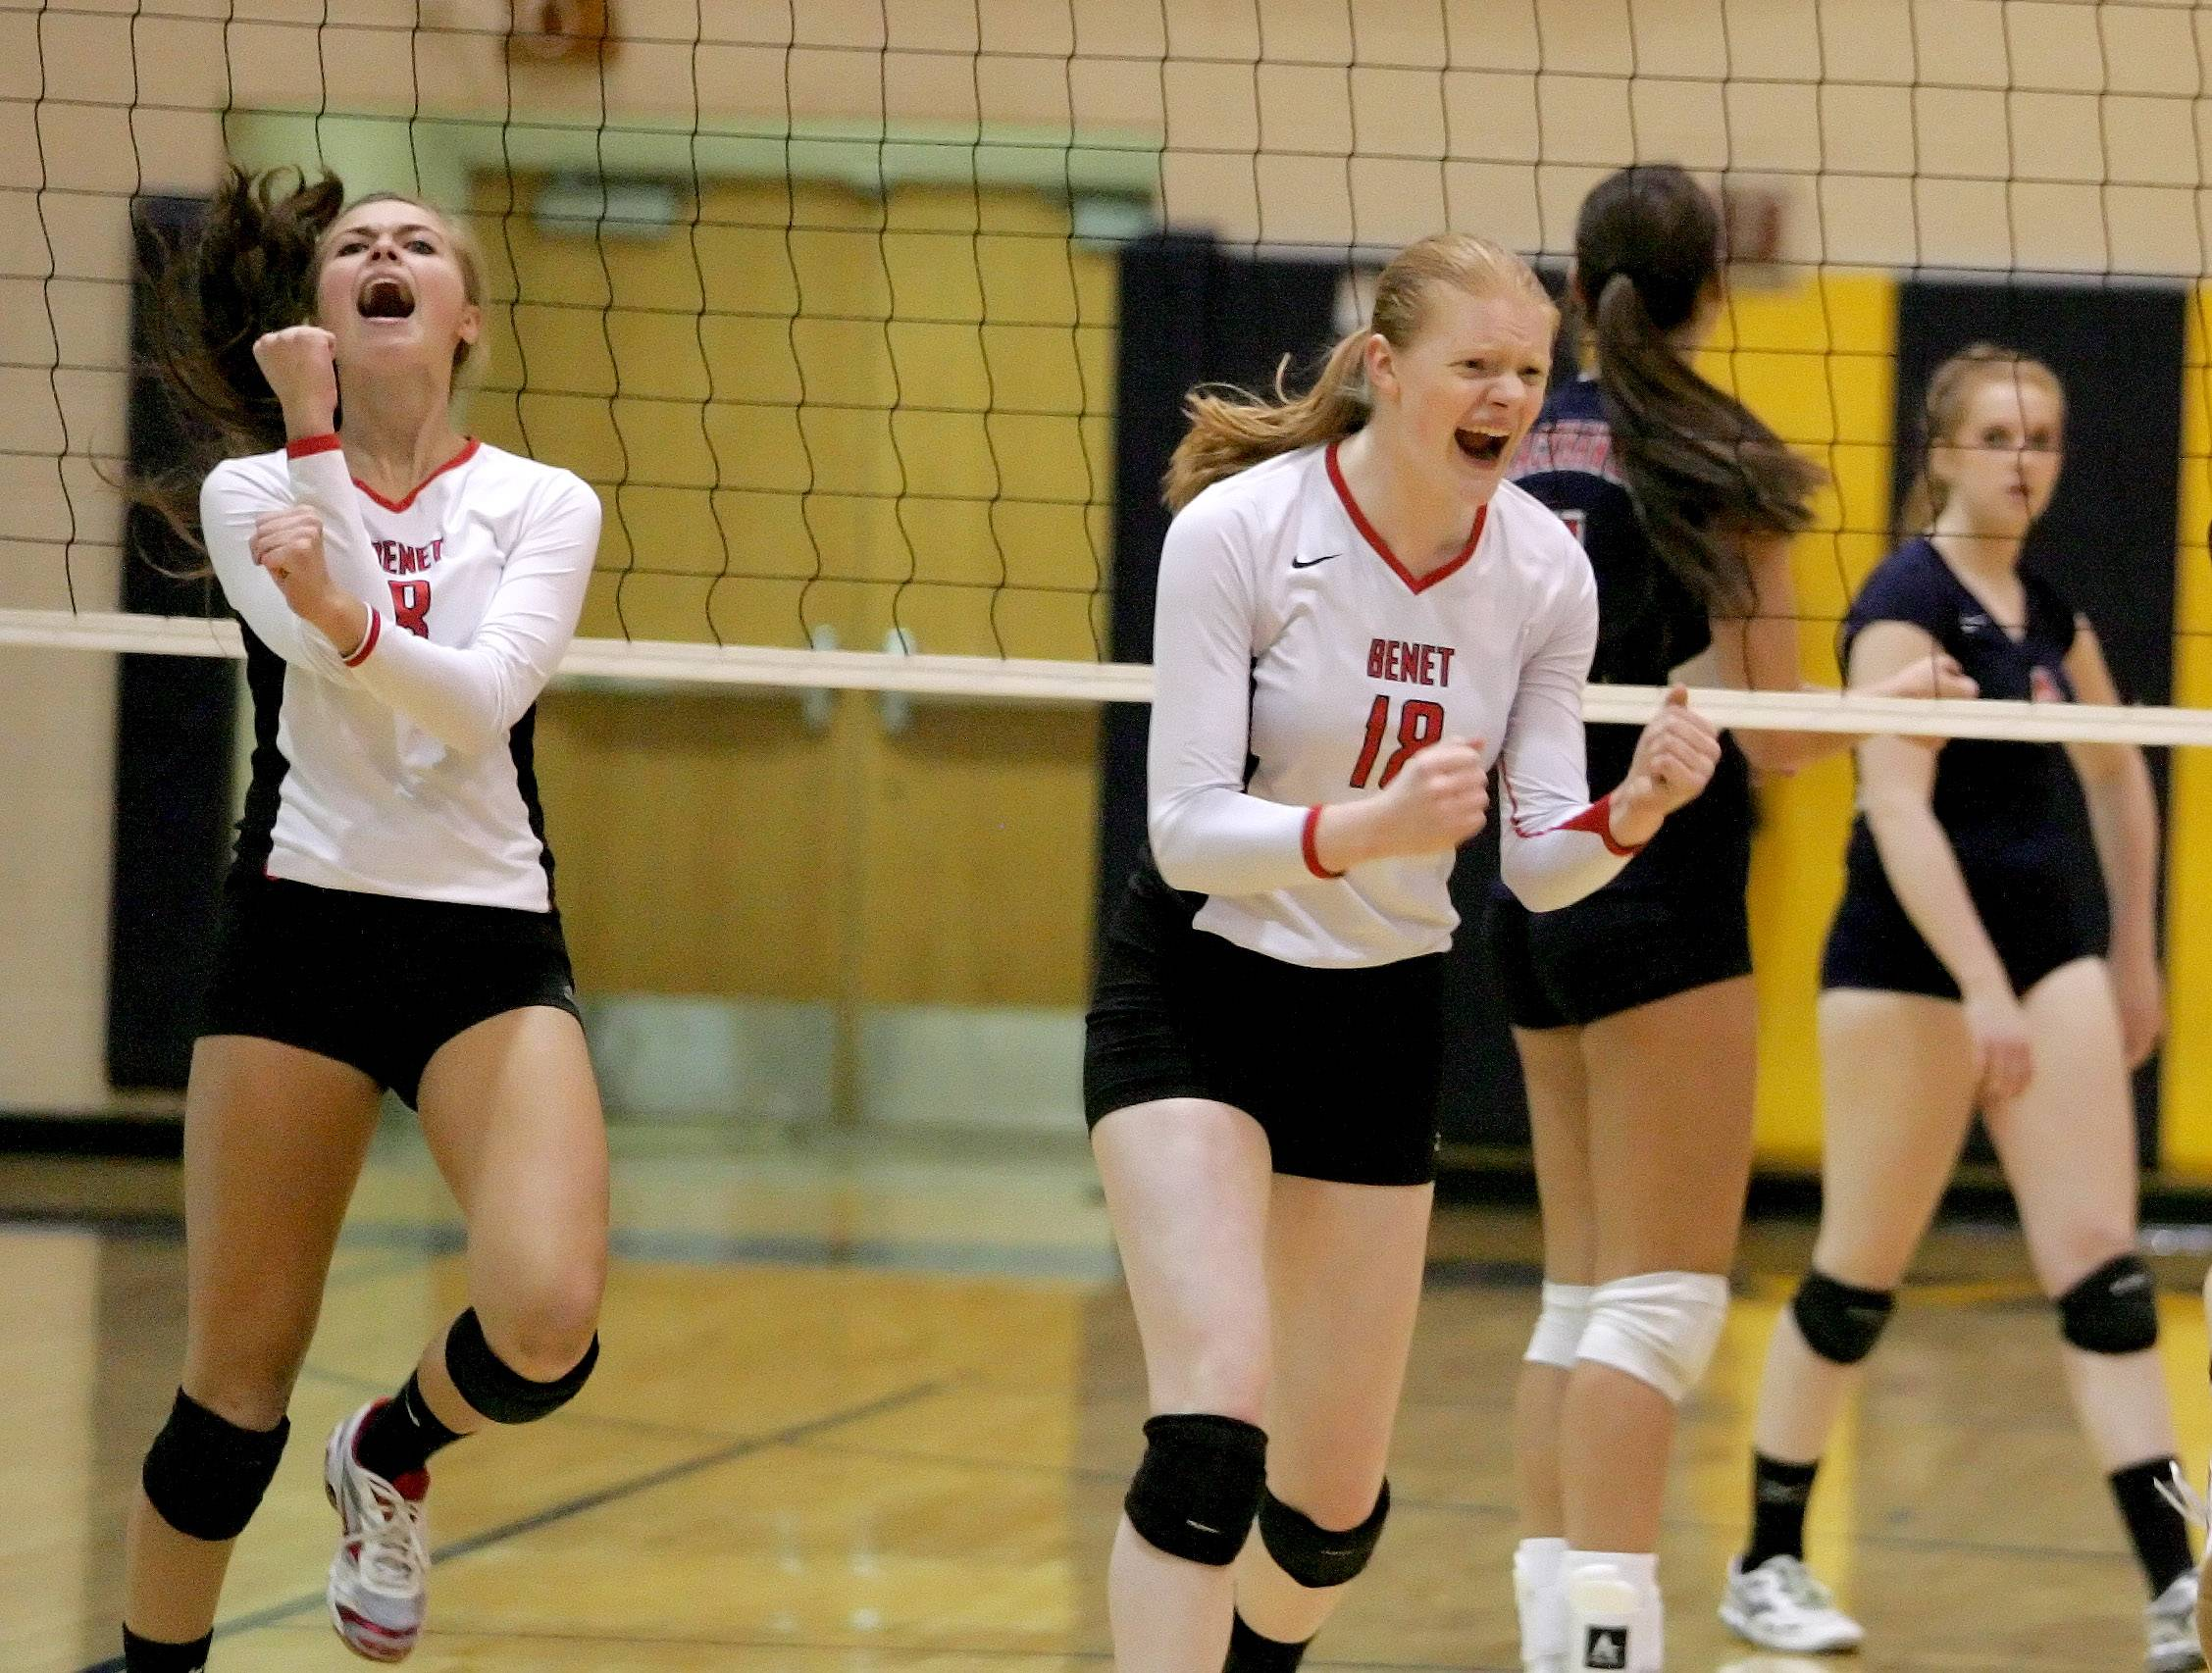 Nicki Barnes, left and Rachael Fara, right, of Benet, react to a point won during their 2-0 win over West Aurora in girls volleyball Neuqua Valley sectional semifinals in Naperville on Tuesday.